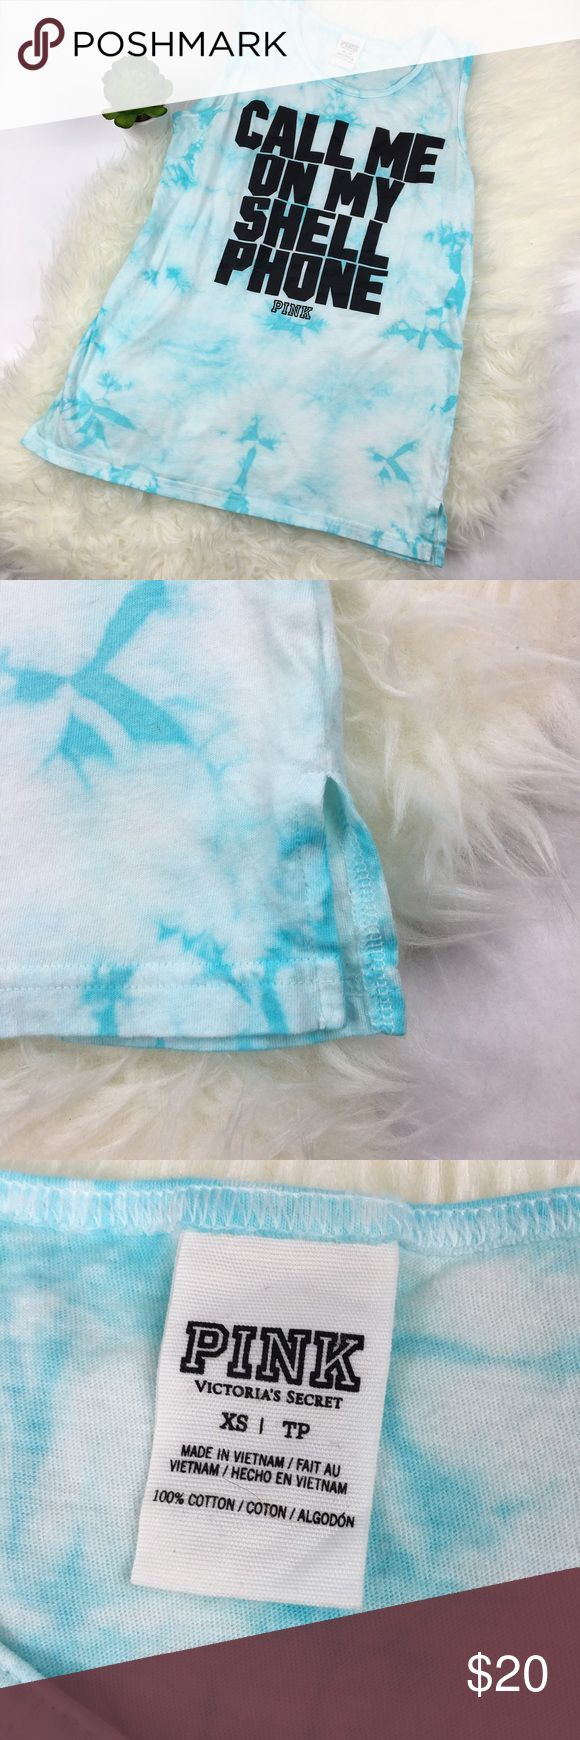 VS Pink Call Me on My Shell Phone Tie Dye Tank So fun for summer, lounging, workouts....you name it! Blue tie dye. Side vent hem. Also fits a small. Excellent condition. Ships same day from a smoke free home! No trades  PINK Victoria's Secret Tops Tank Tops